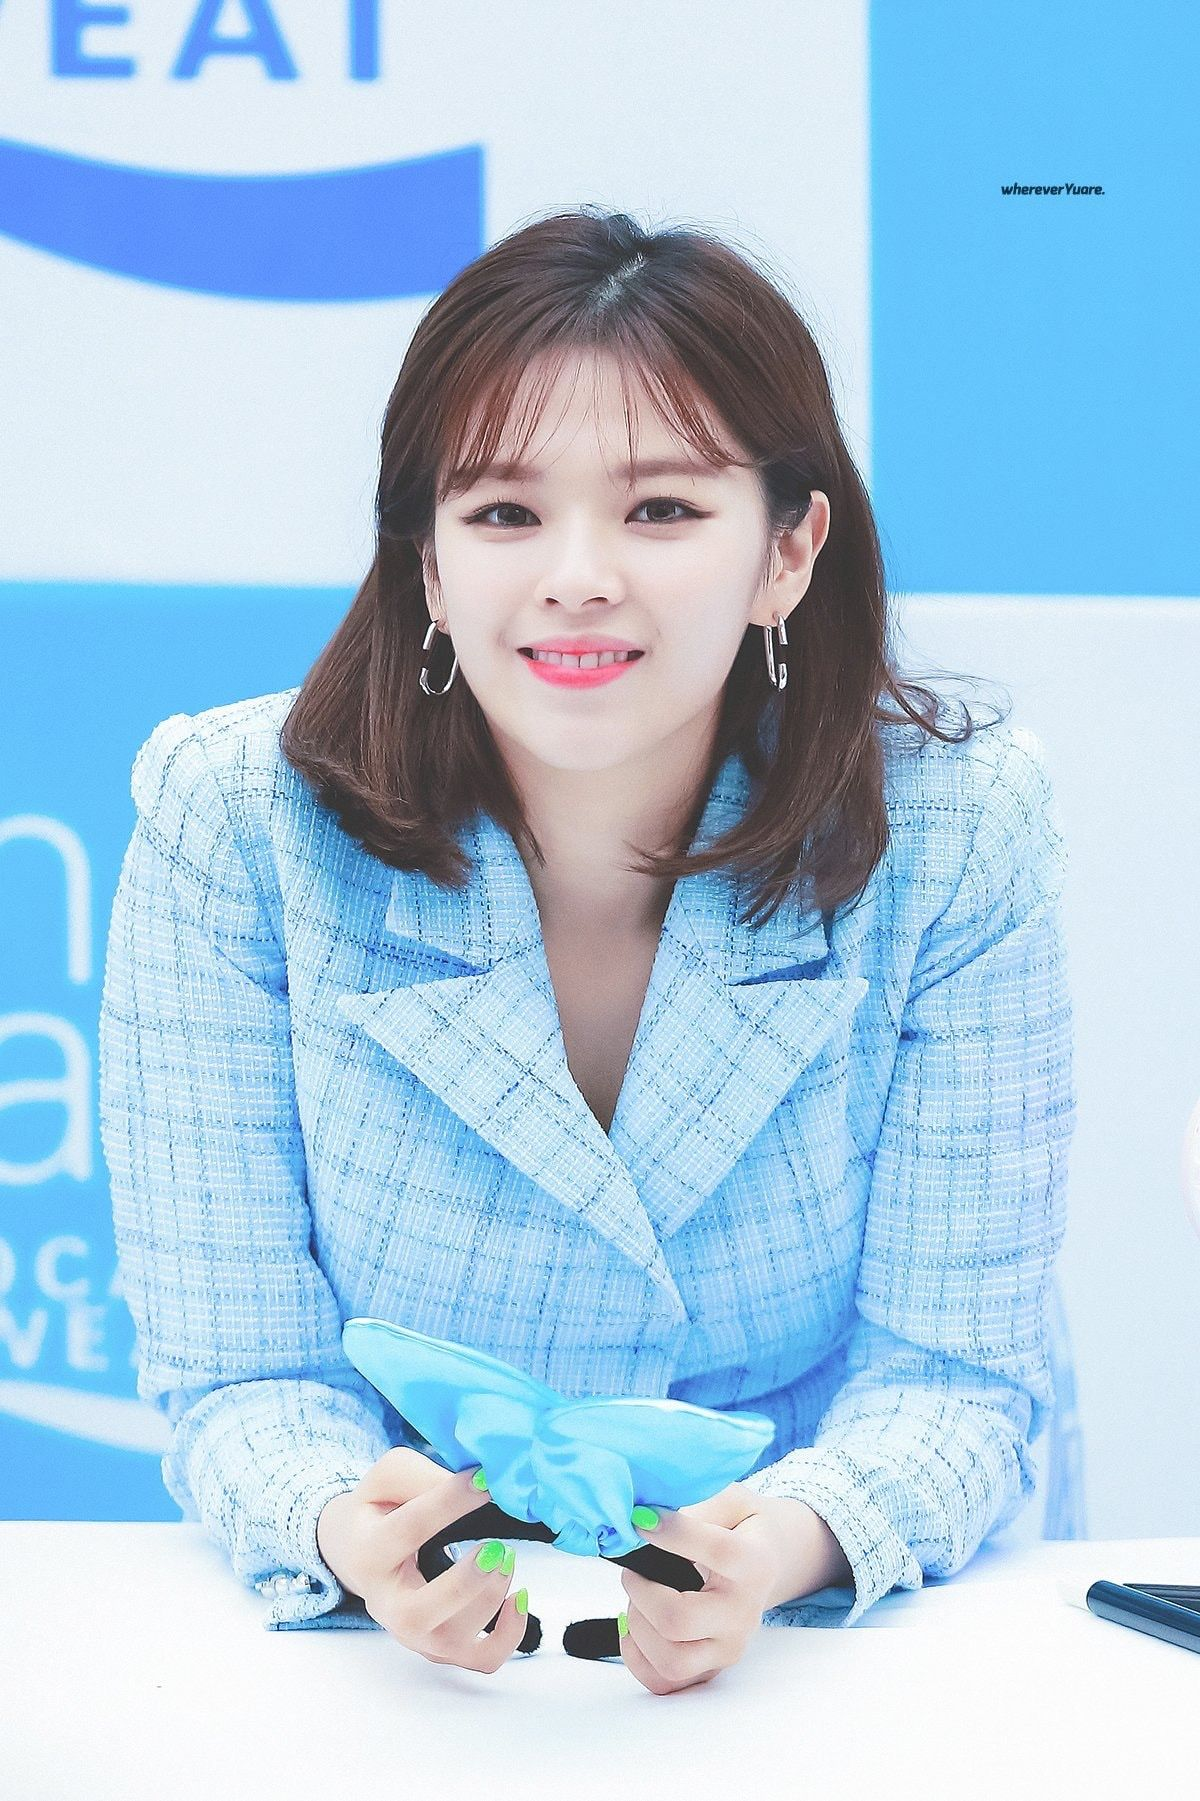 Pin by Vy on Twice | Korean actresses, Korean girl groups